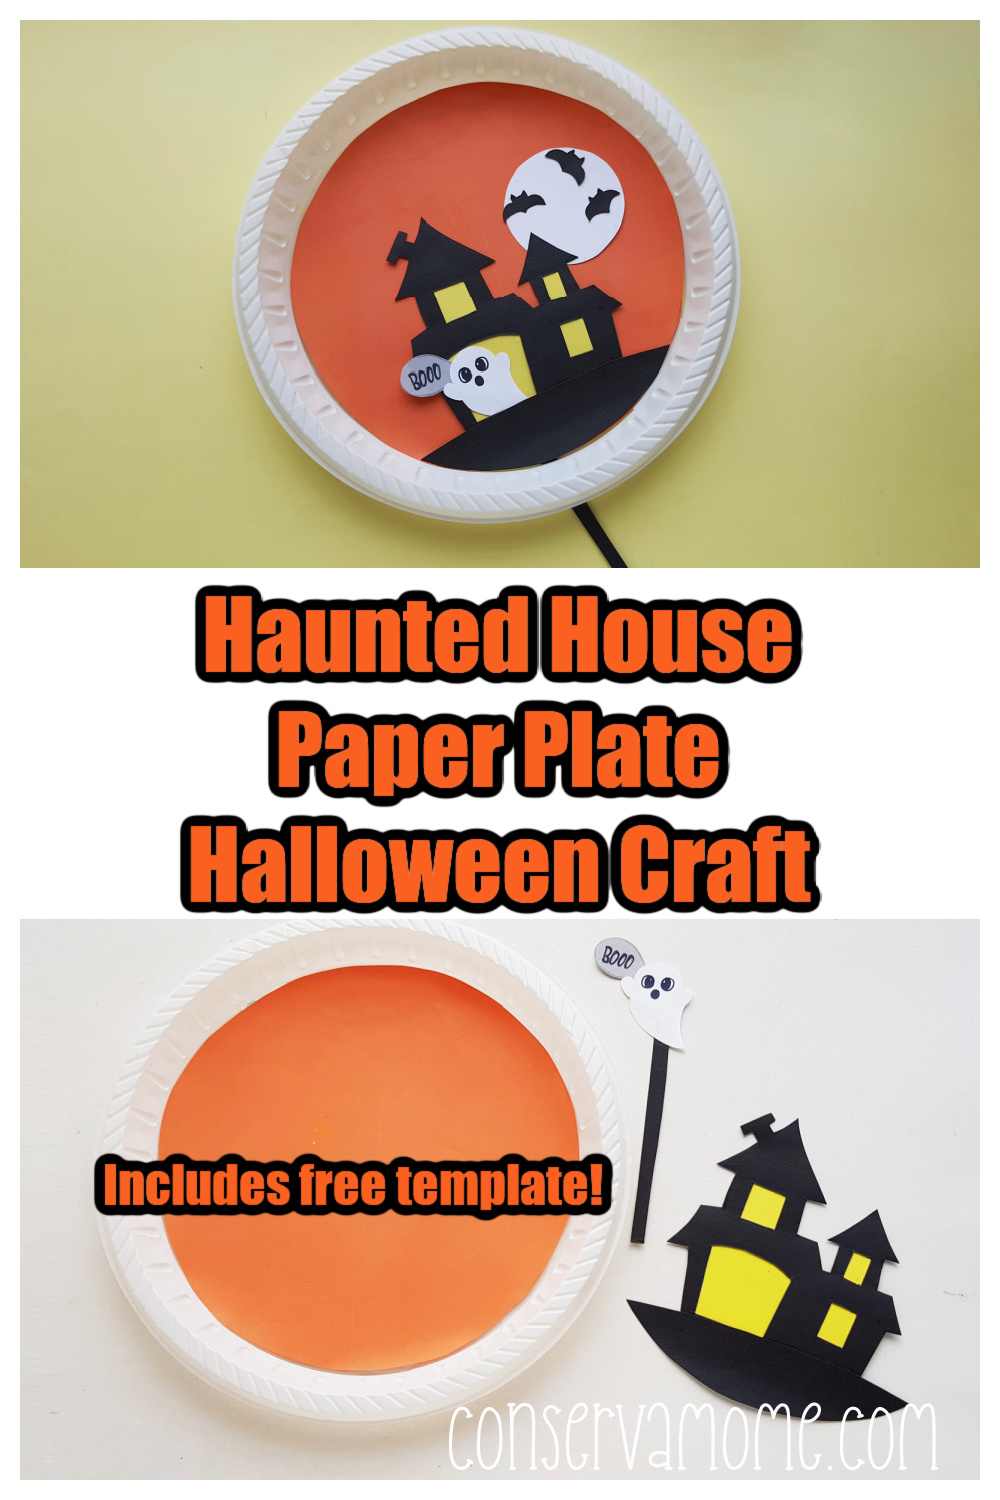 Haunted House Paper Plate Halloween Craft